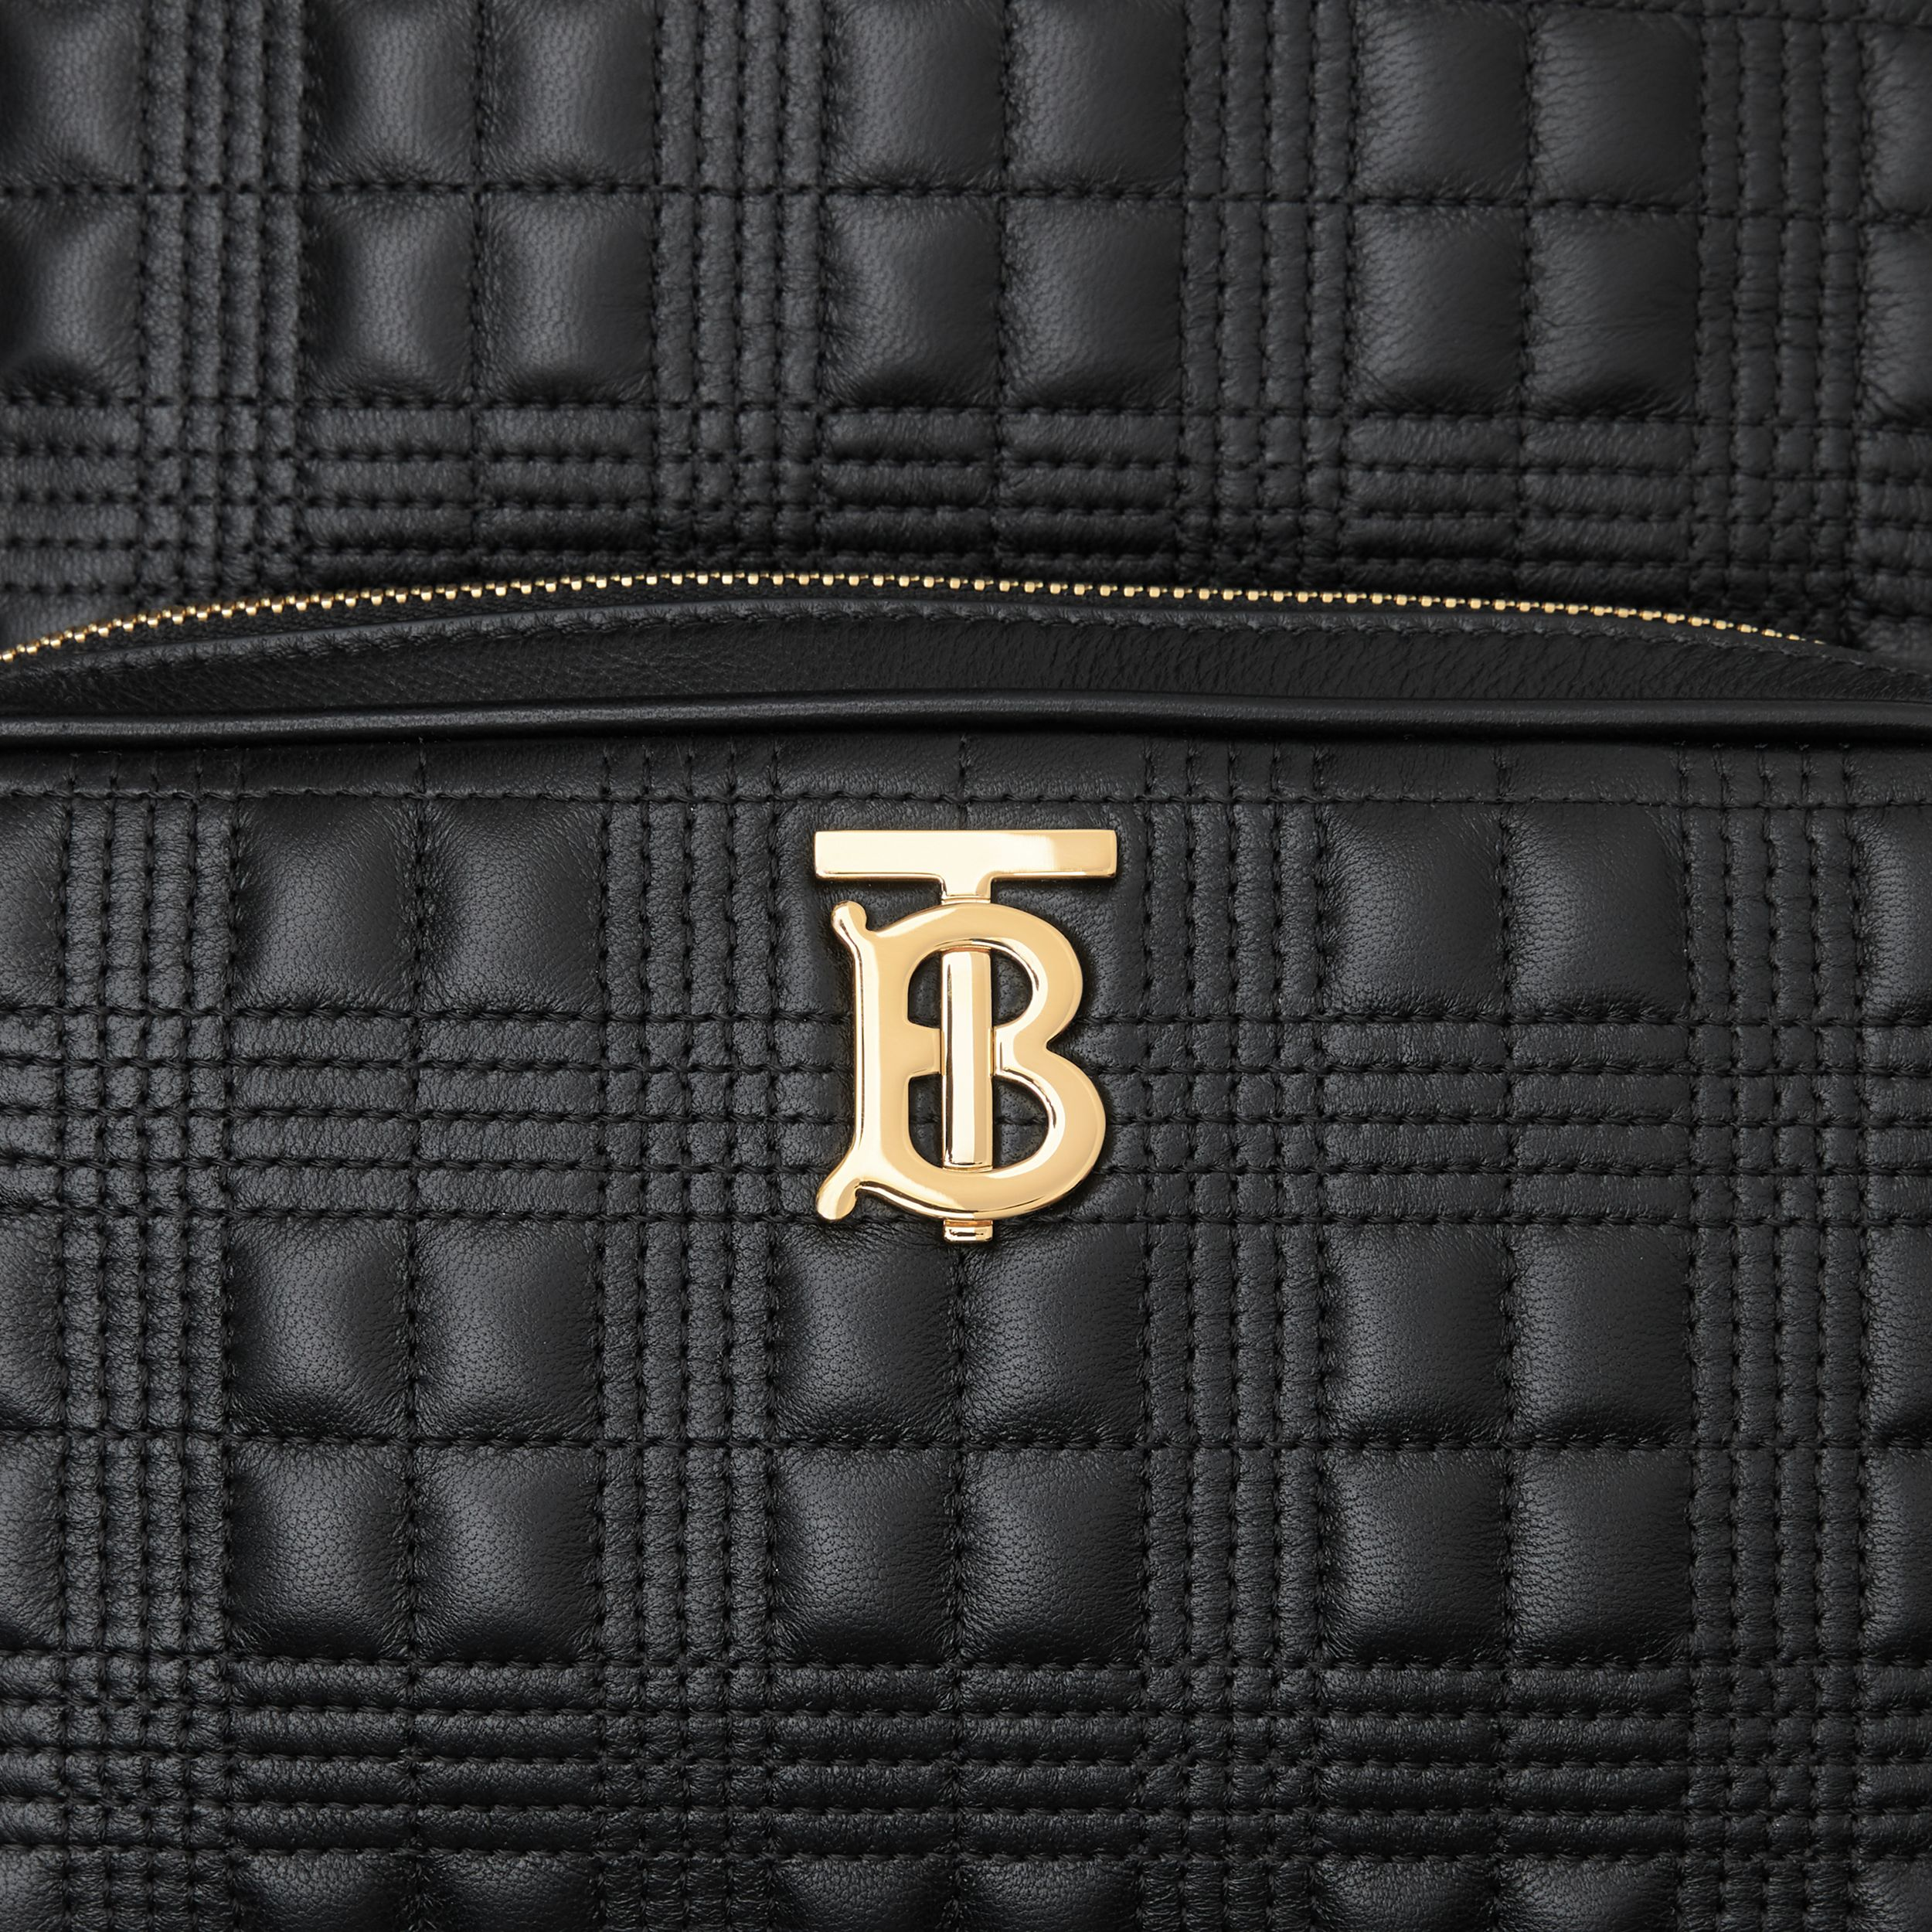 Quilted Check Lambskin Backpack in Black - Women | Burberry United States - 2